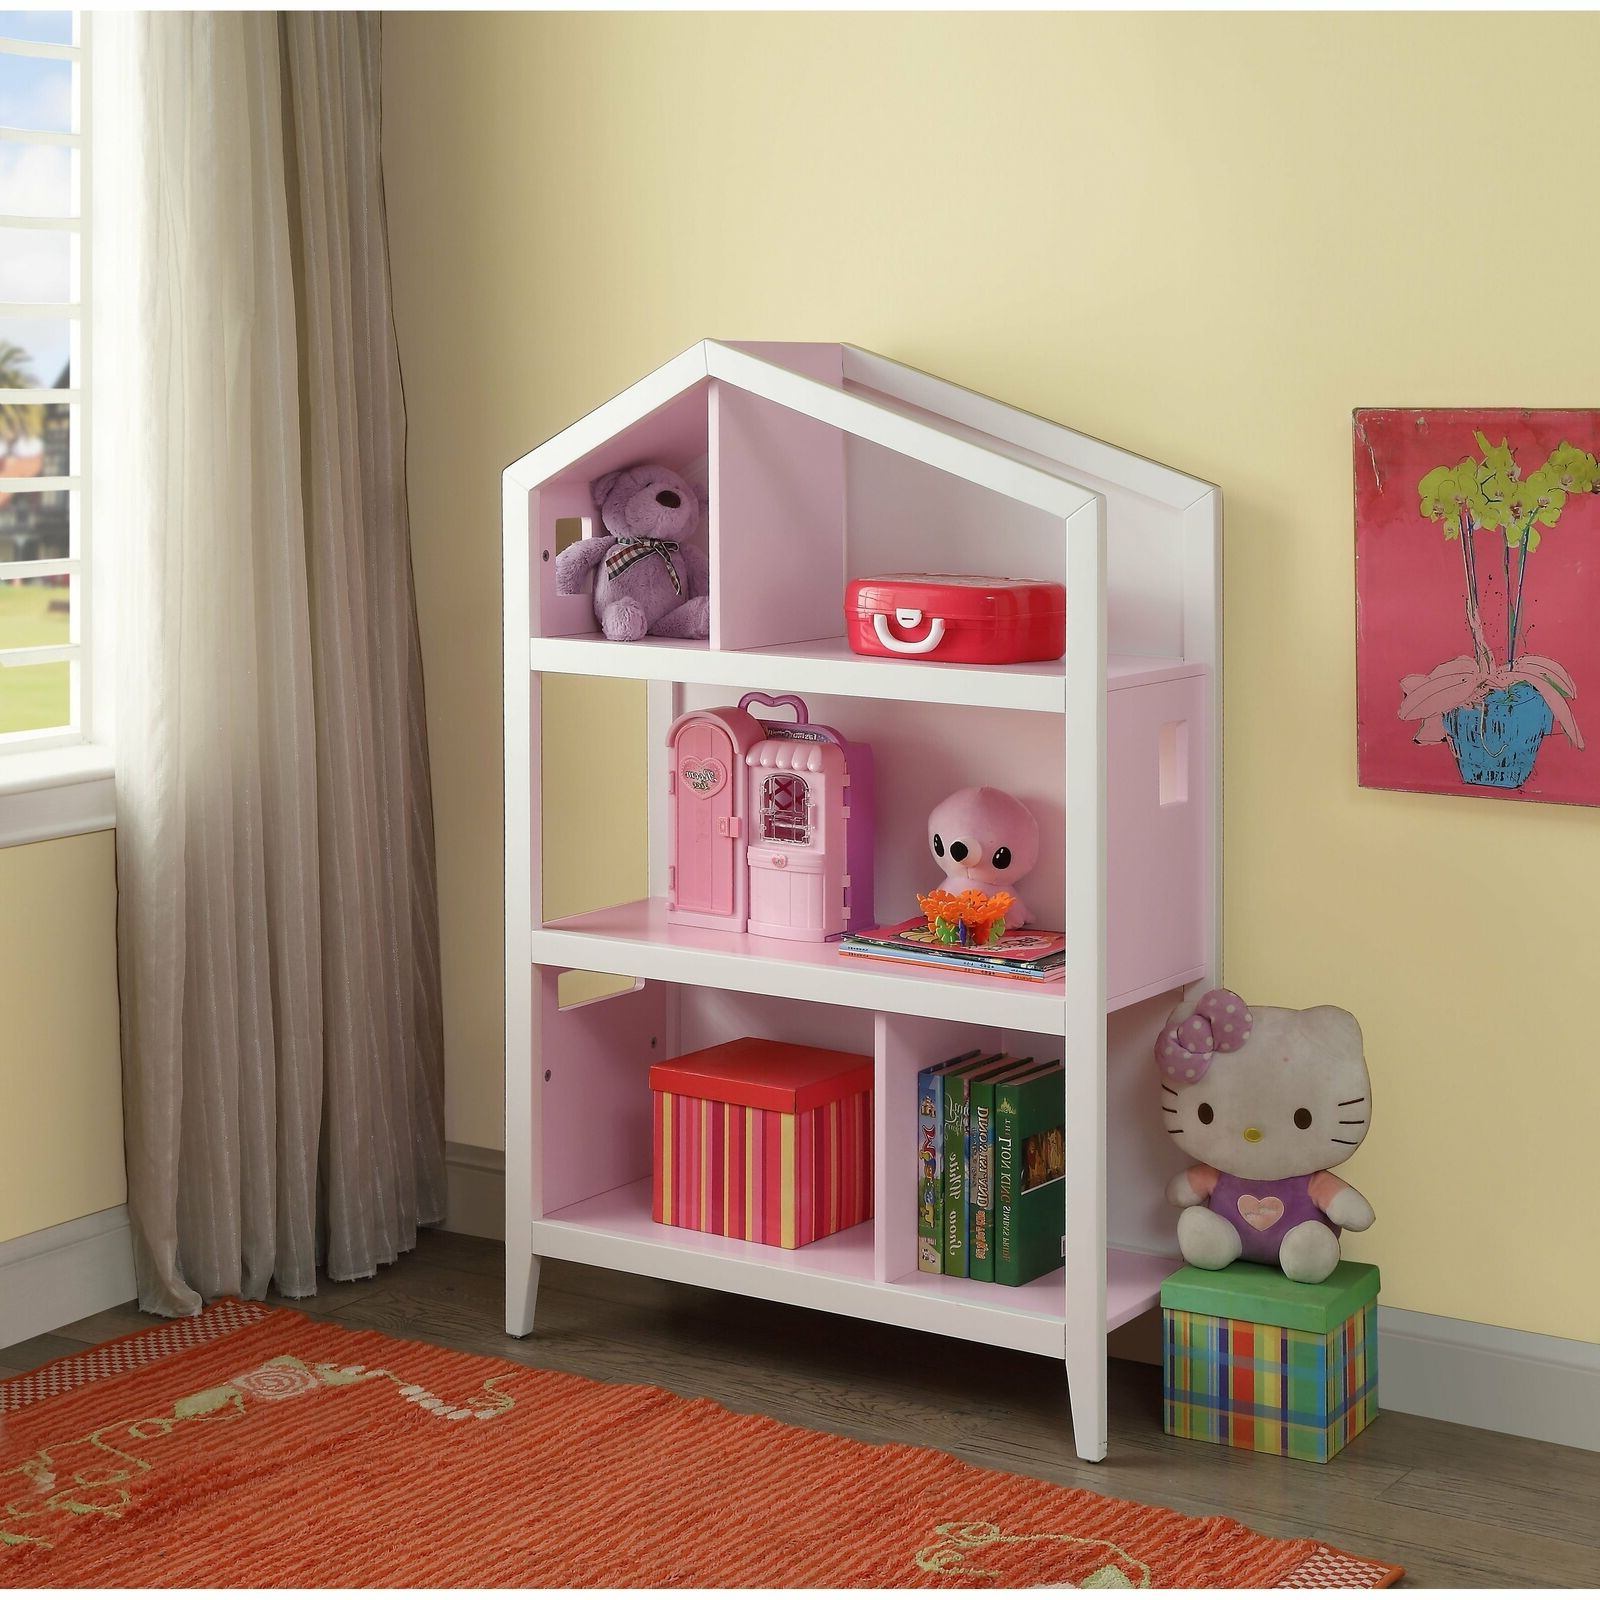 Acme Doll Cottage Bookcase With White And Pink Finish 92560 Throughout Latest Mdb Standard Bookcases (View 17 of 20)